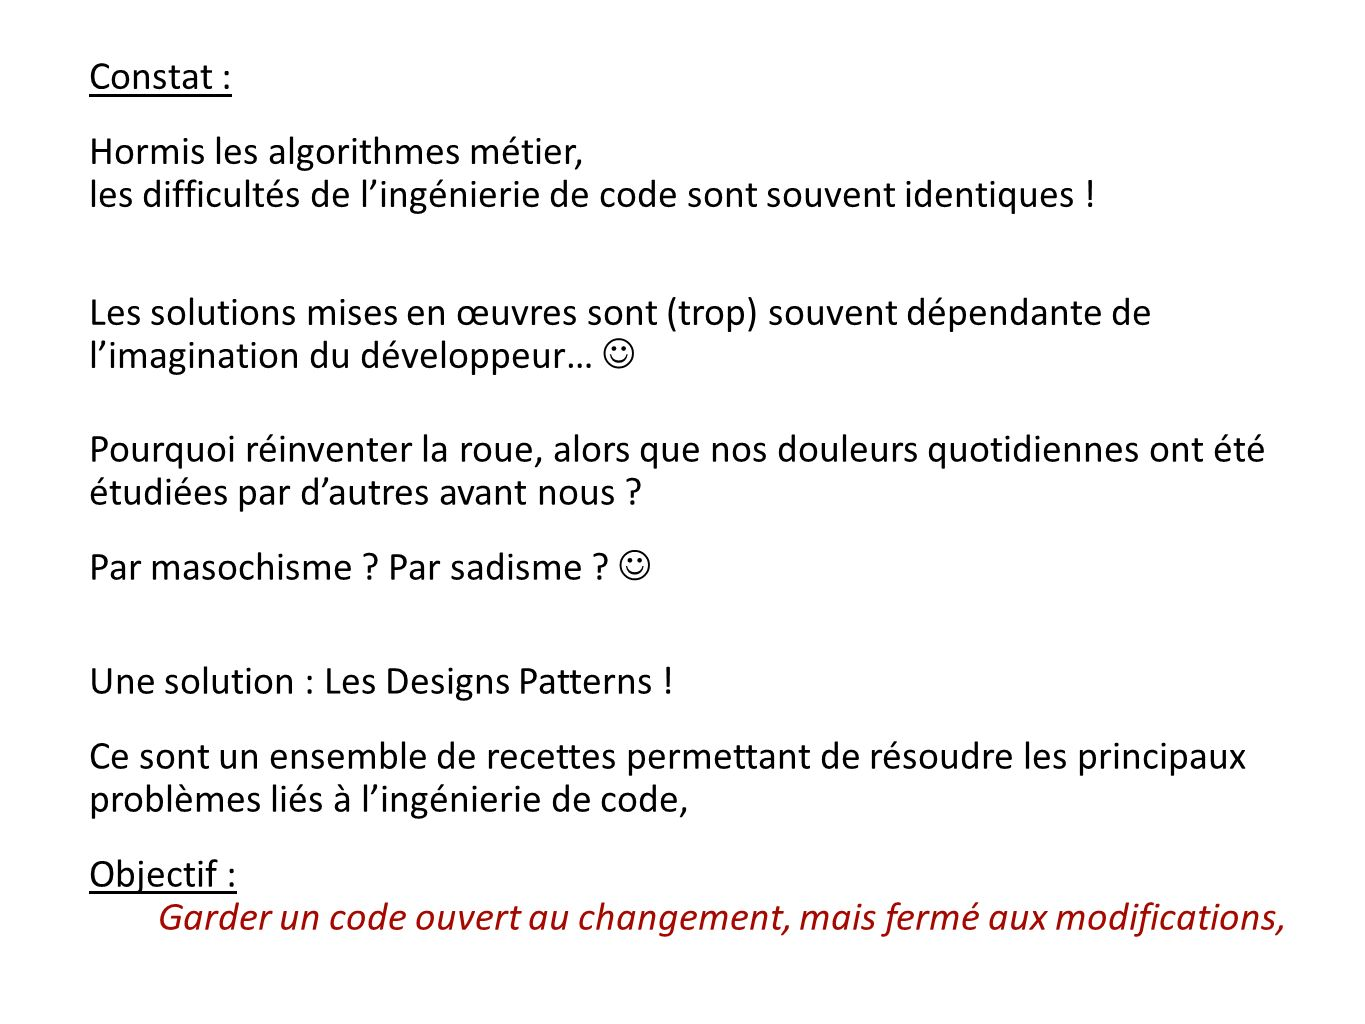 Une solution : Les Designs Patterns !